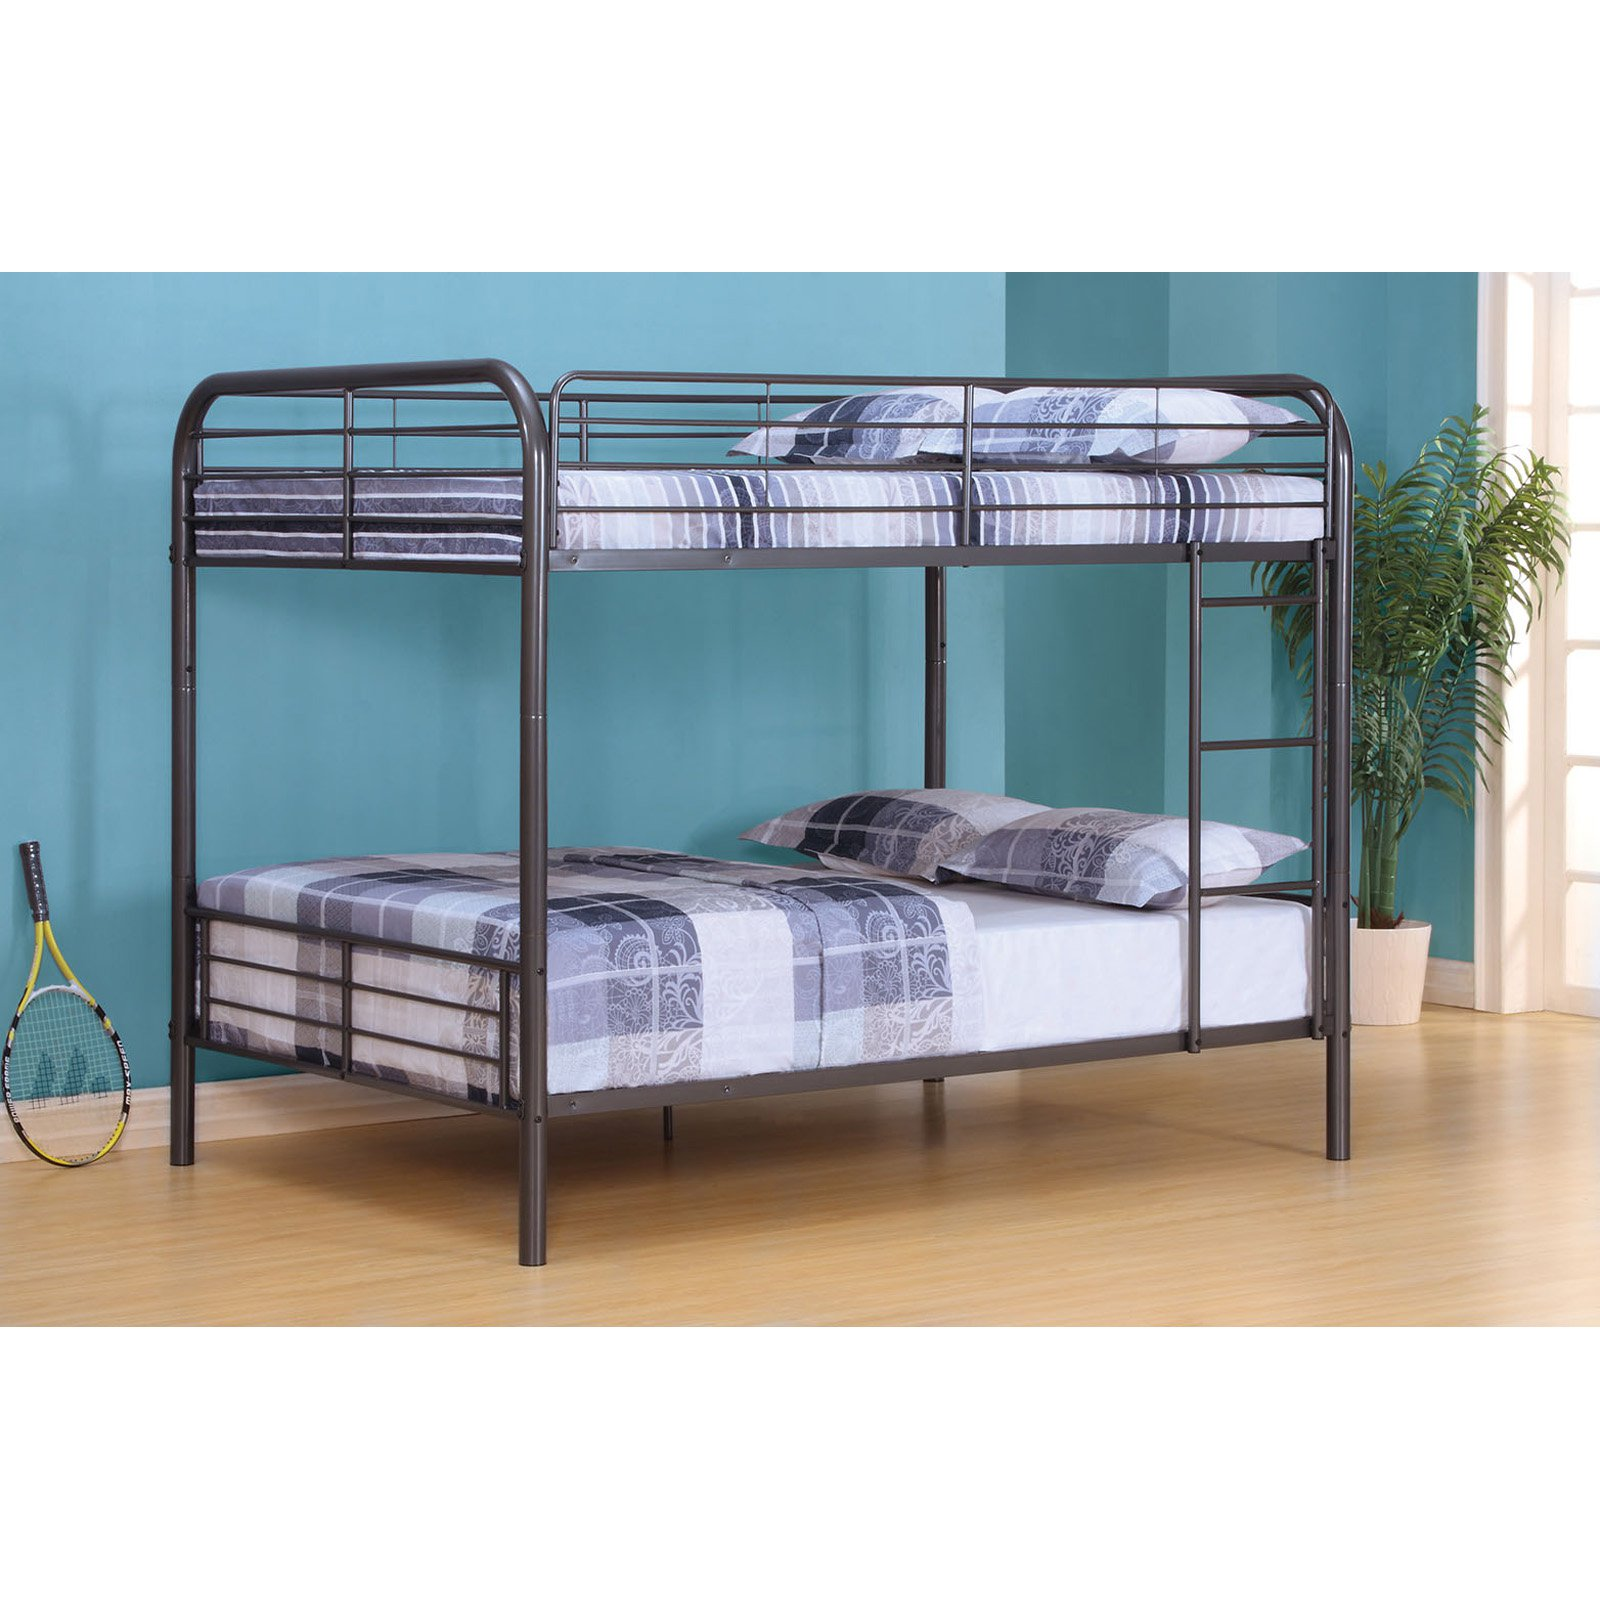 Acme Furniture Metal Bristol Full over Full Bunk Bed by Acme Furniture